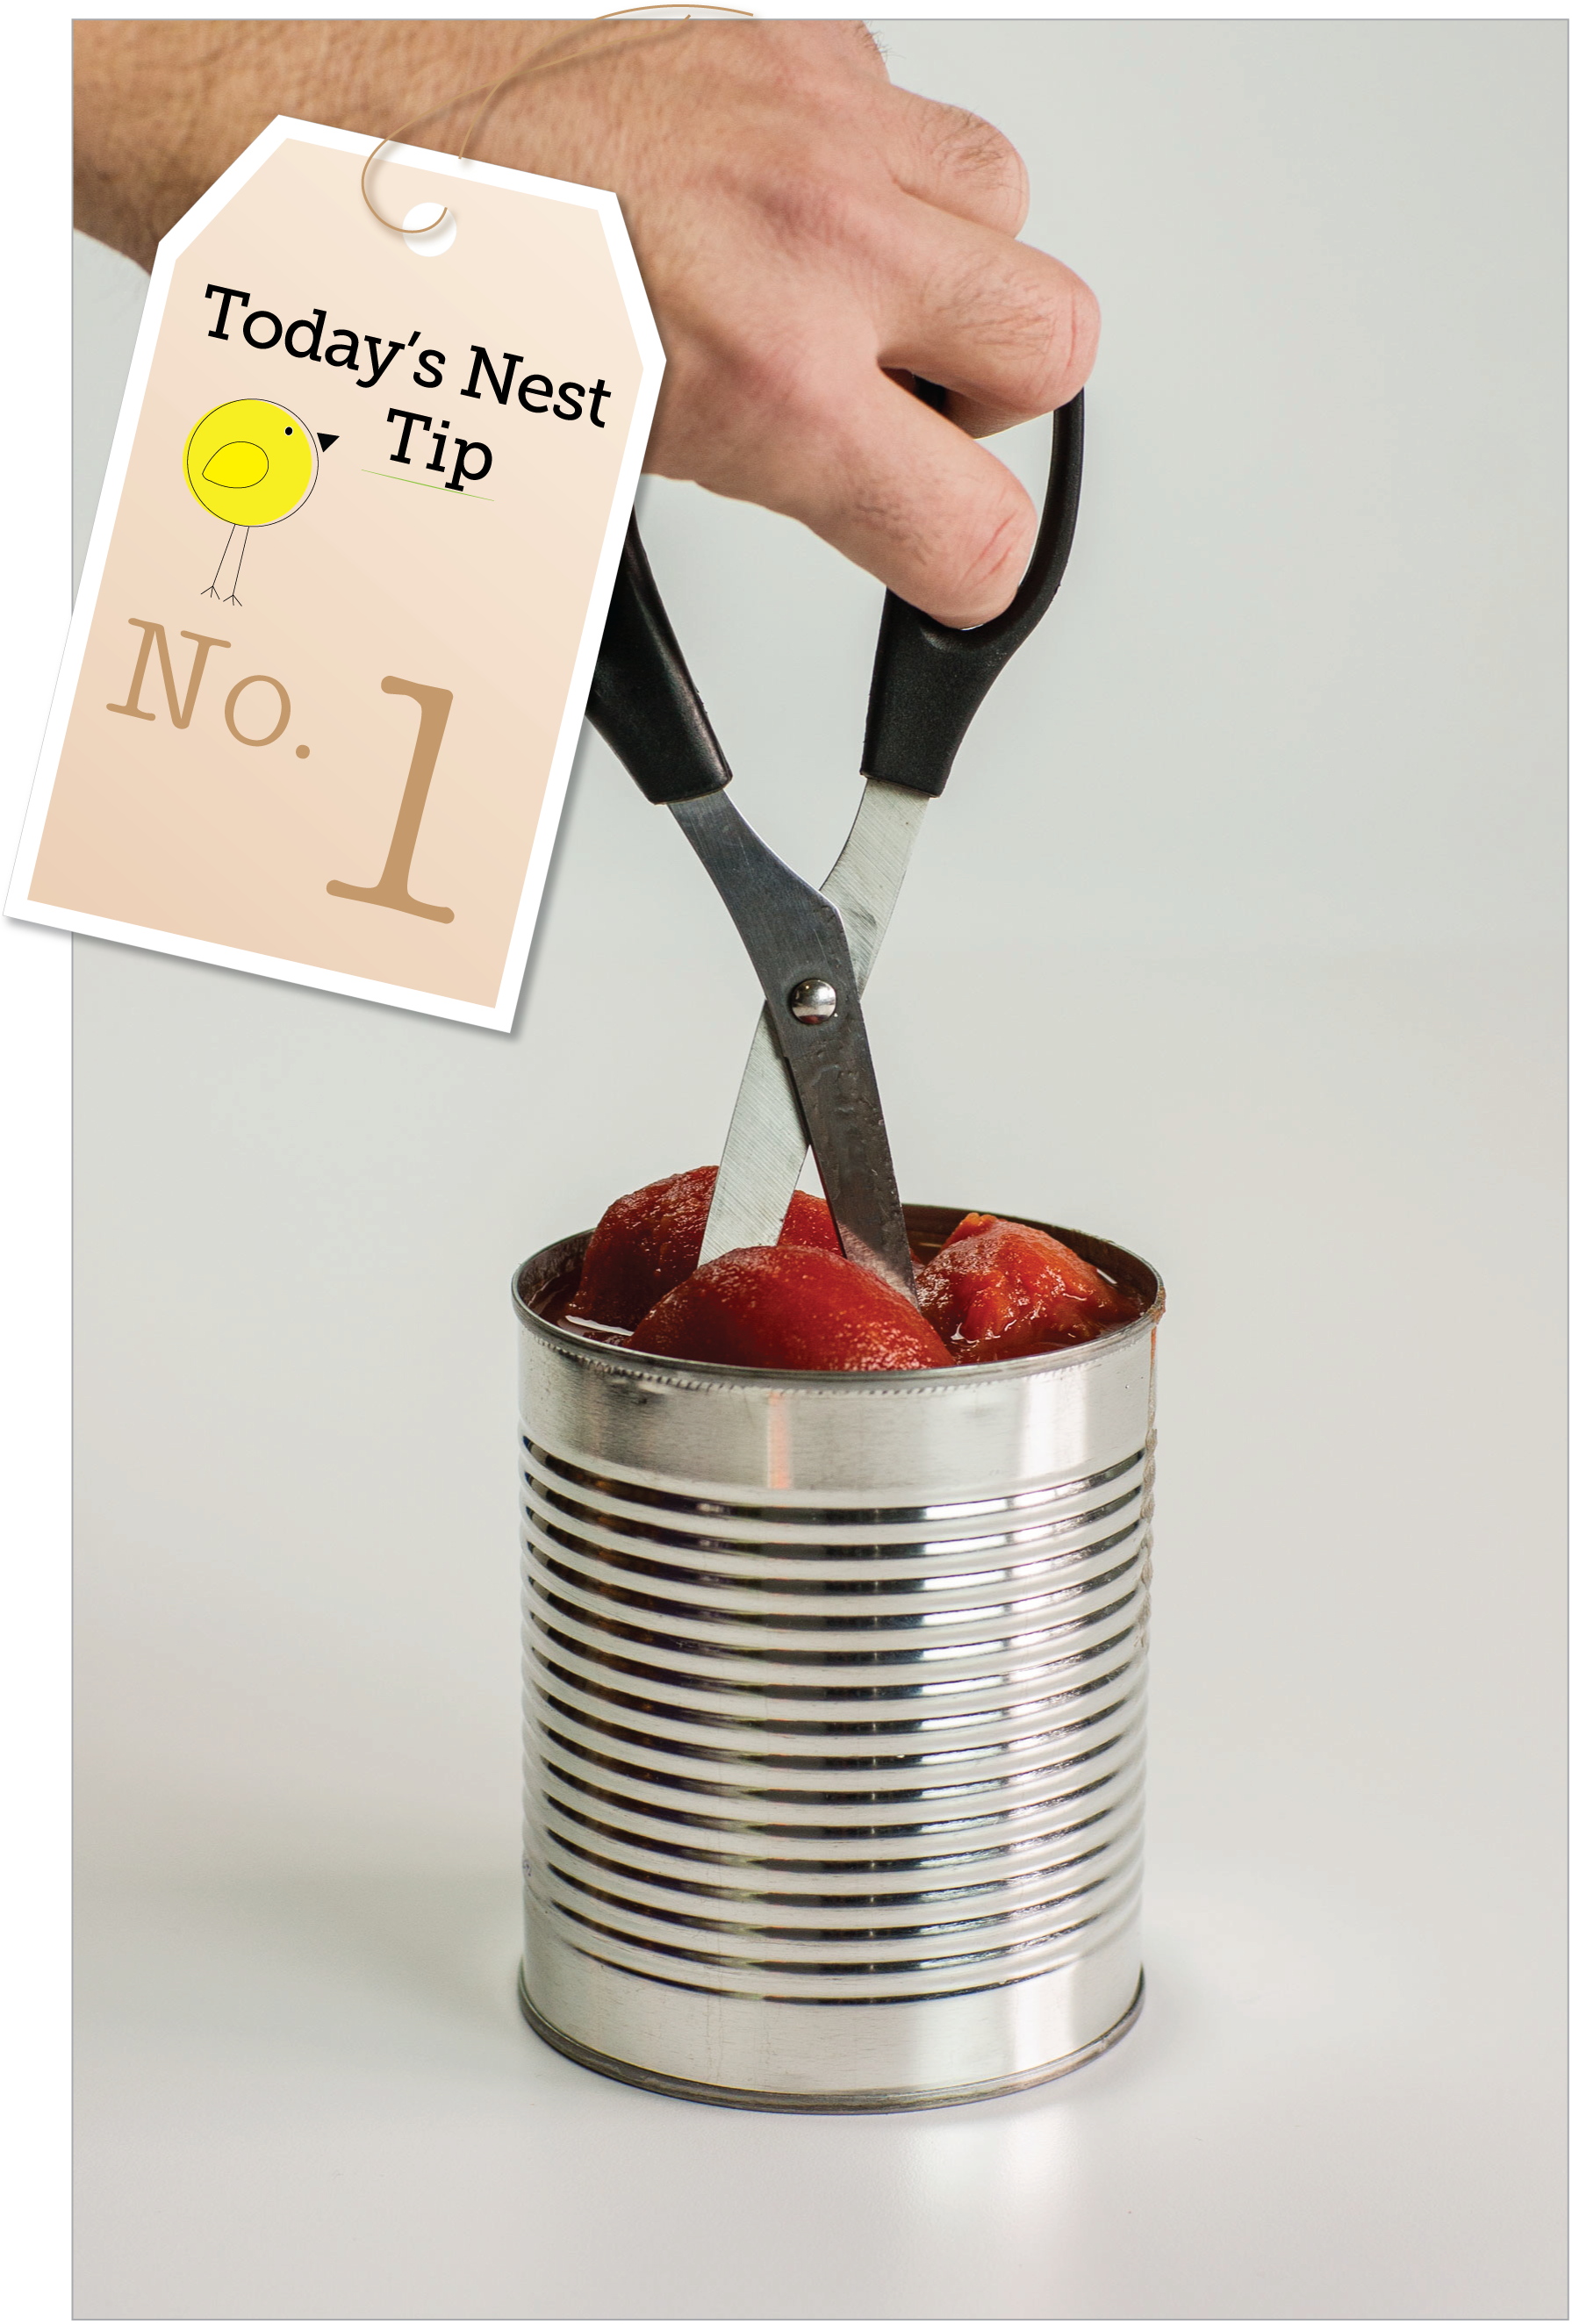 Today's Nest Kitchen Tip: Forget the cutting board. Cut whole tomatoes in the can with kitchen scissors.